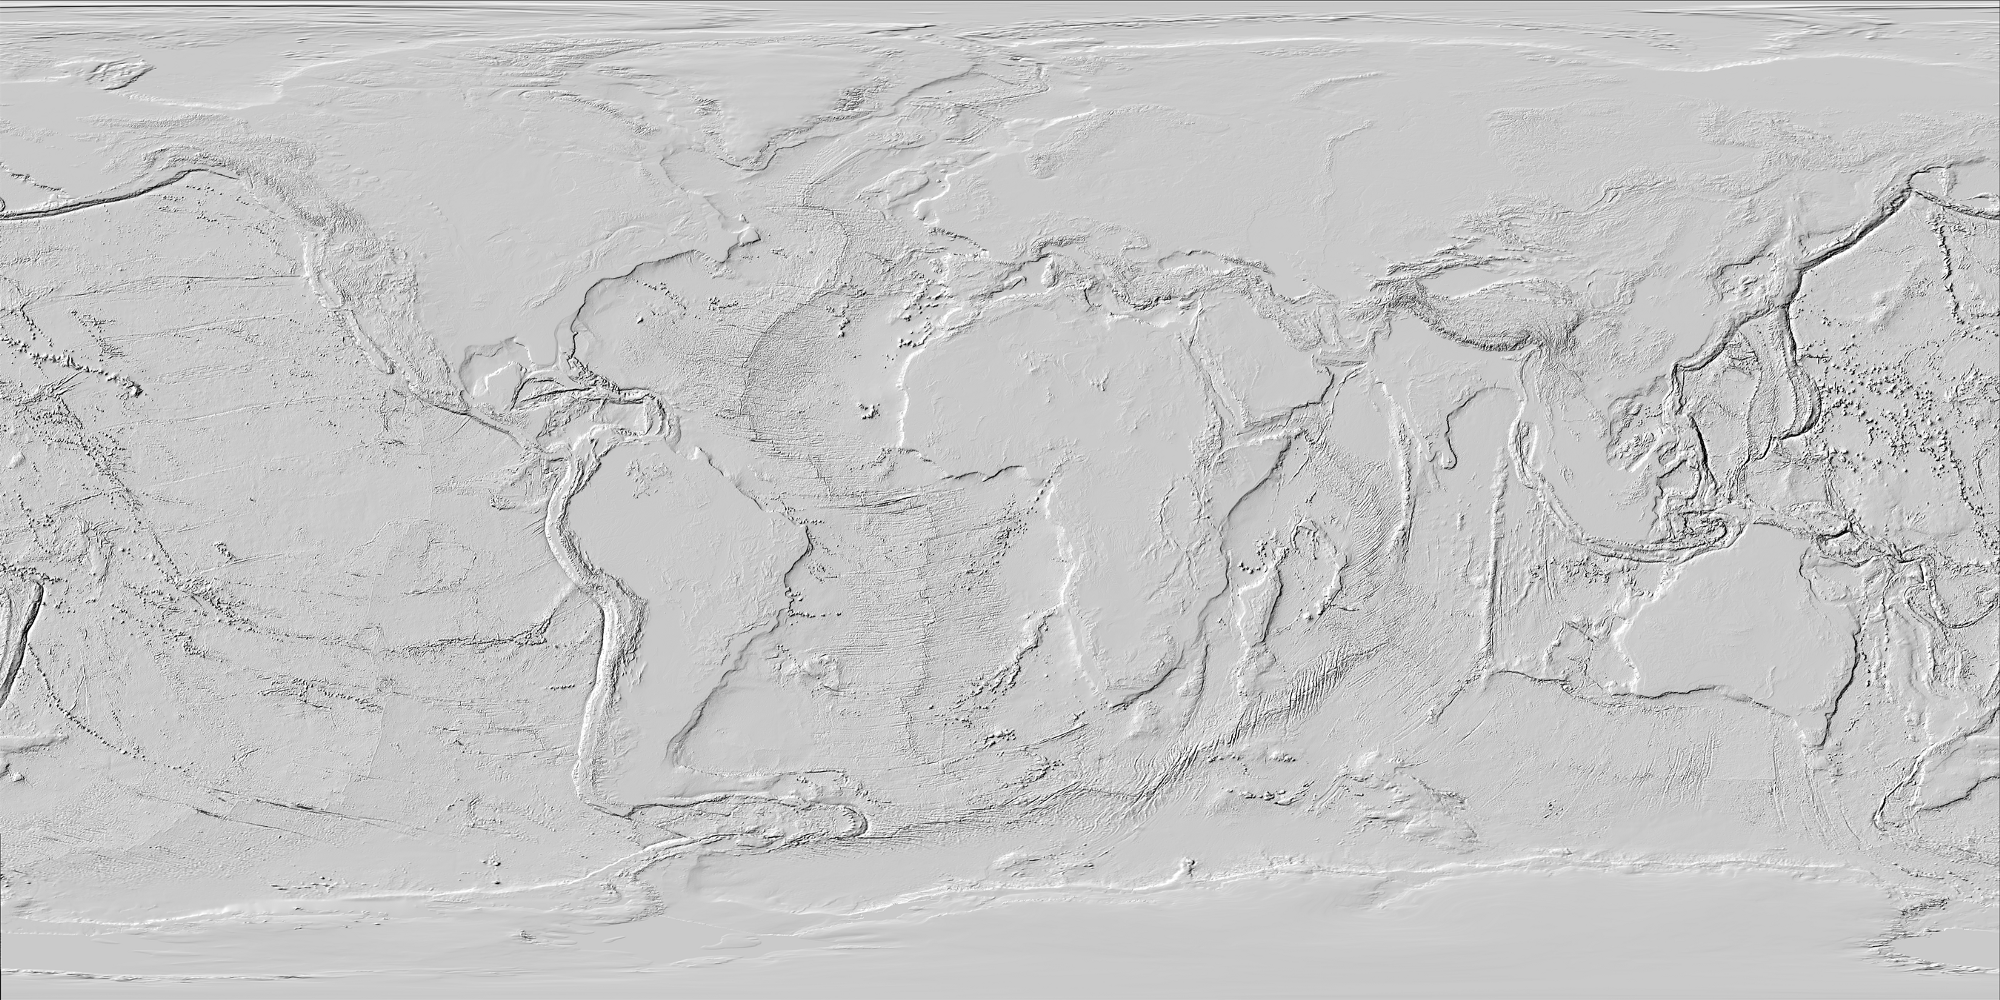 Sea Floor Elevation Data : Creating a giant d bathymetric map out of data for